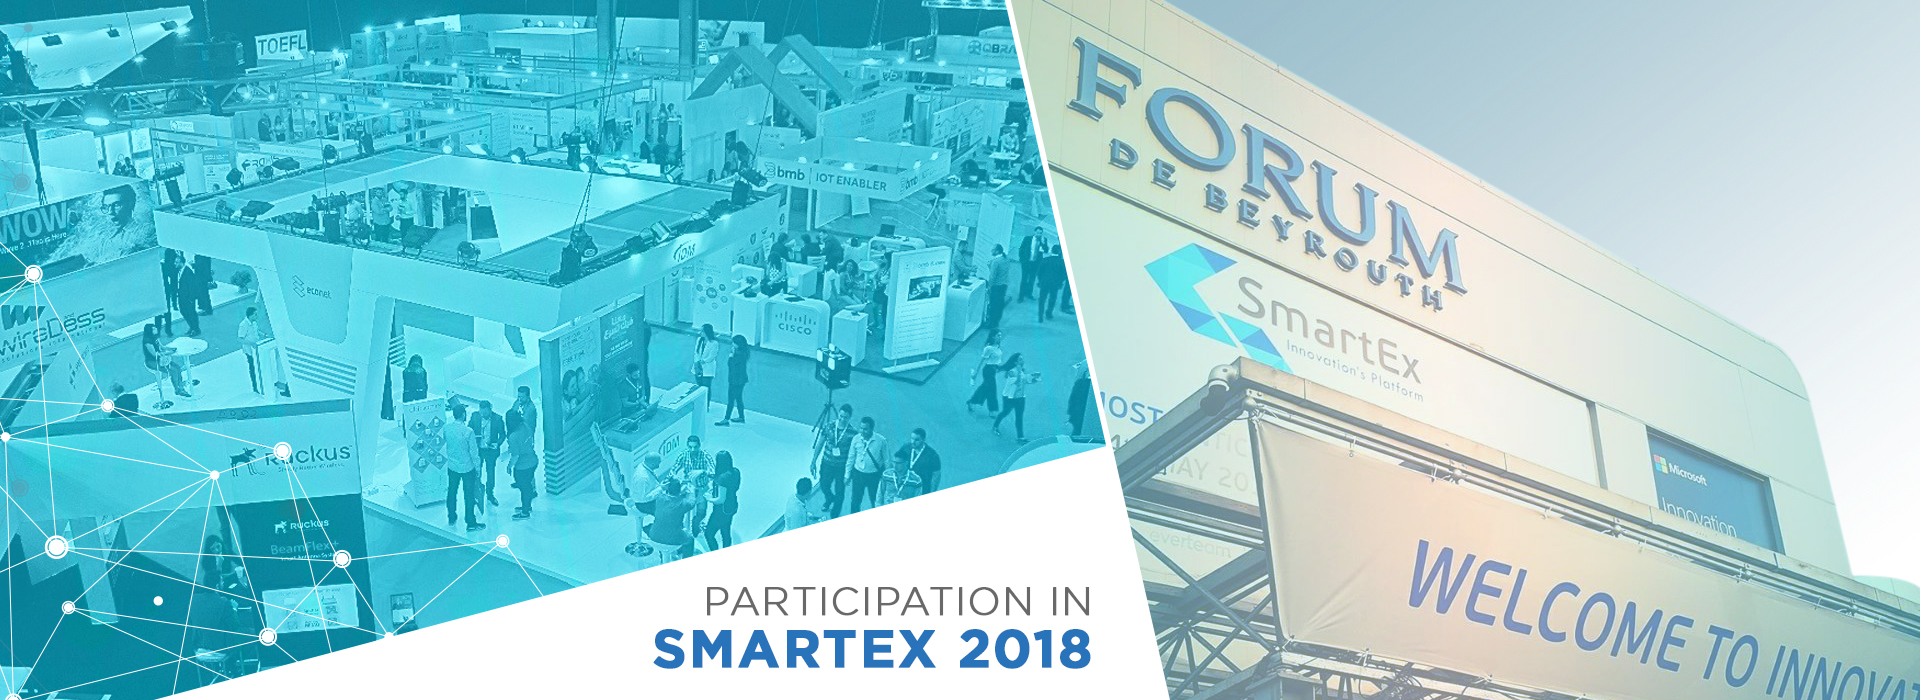 smartex-participation